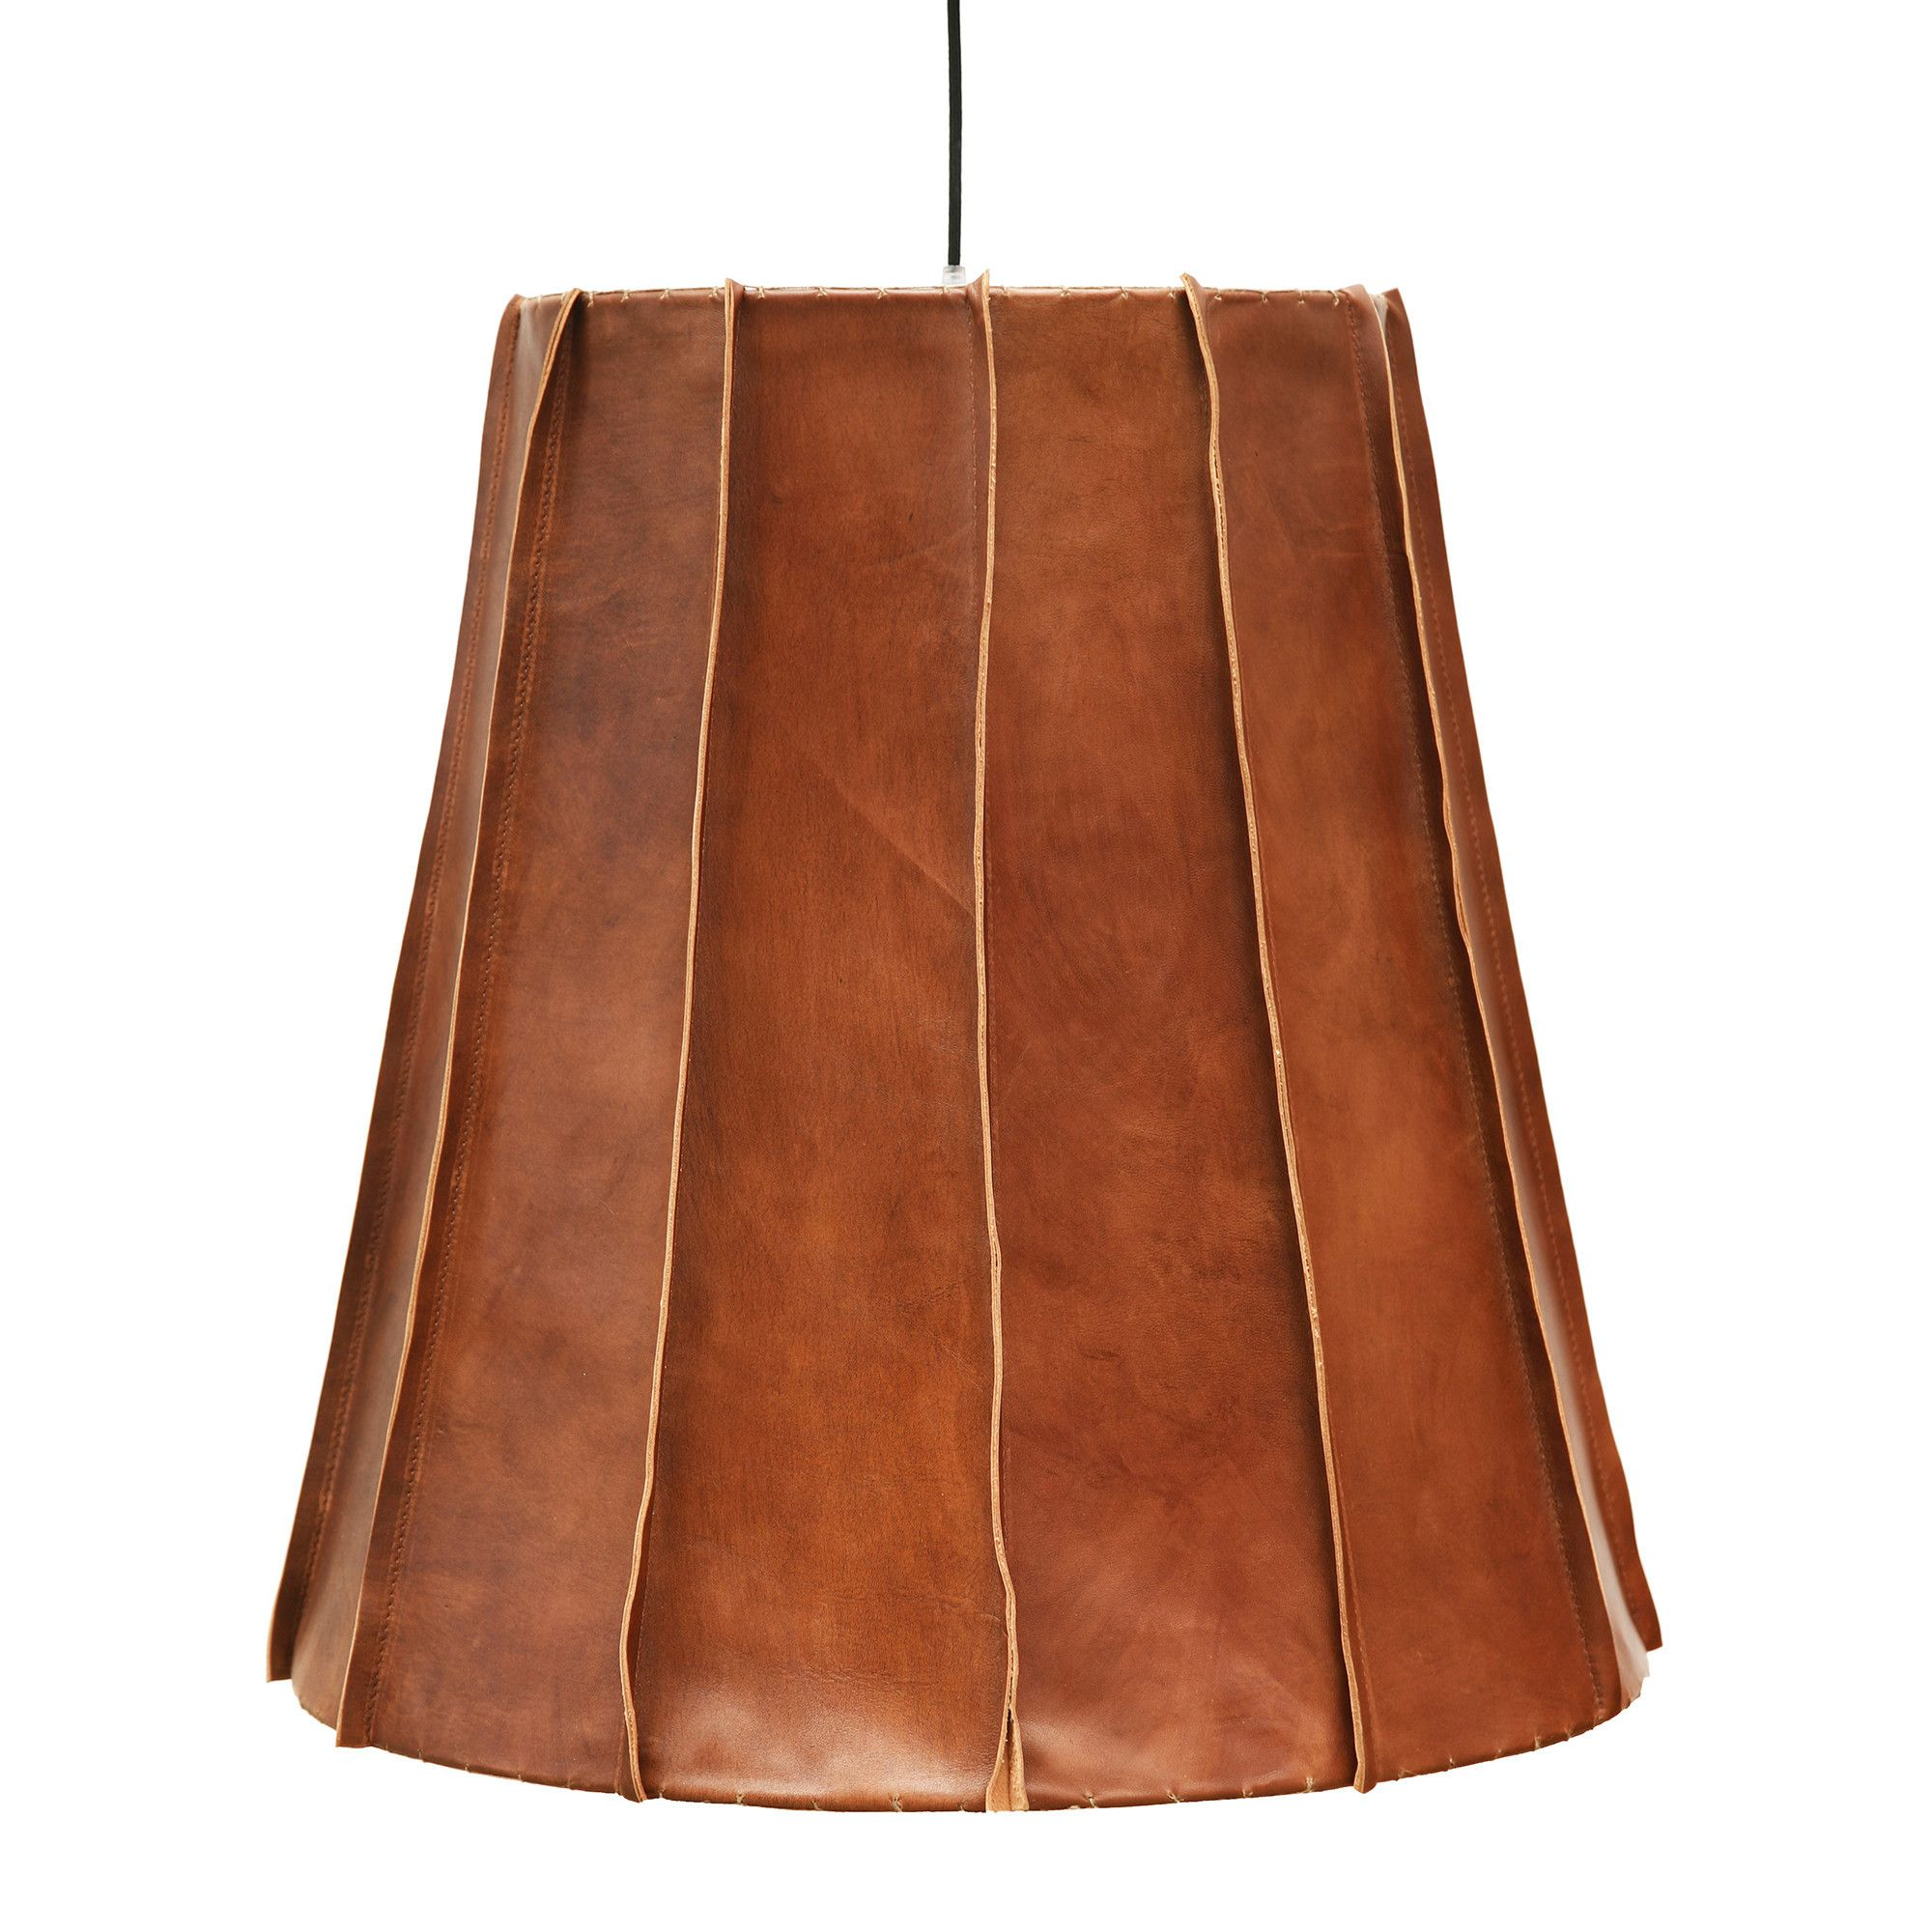 products shades leather light of gold wrapped lamp set table